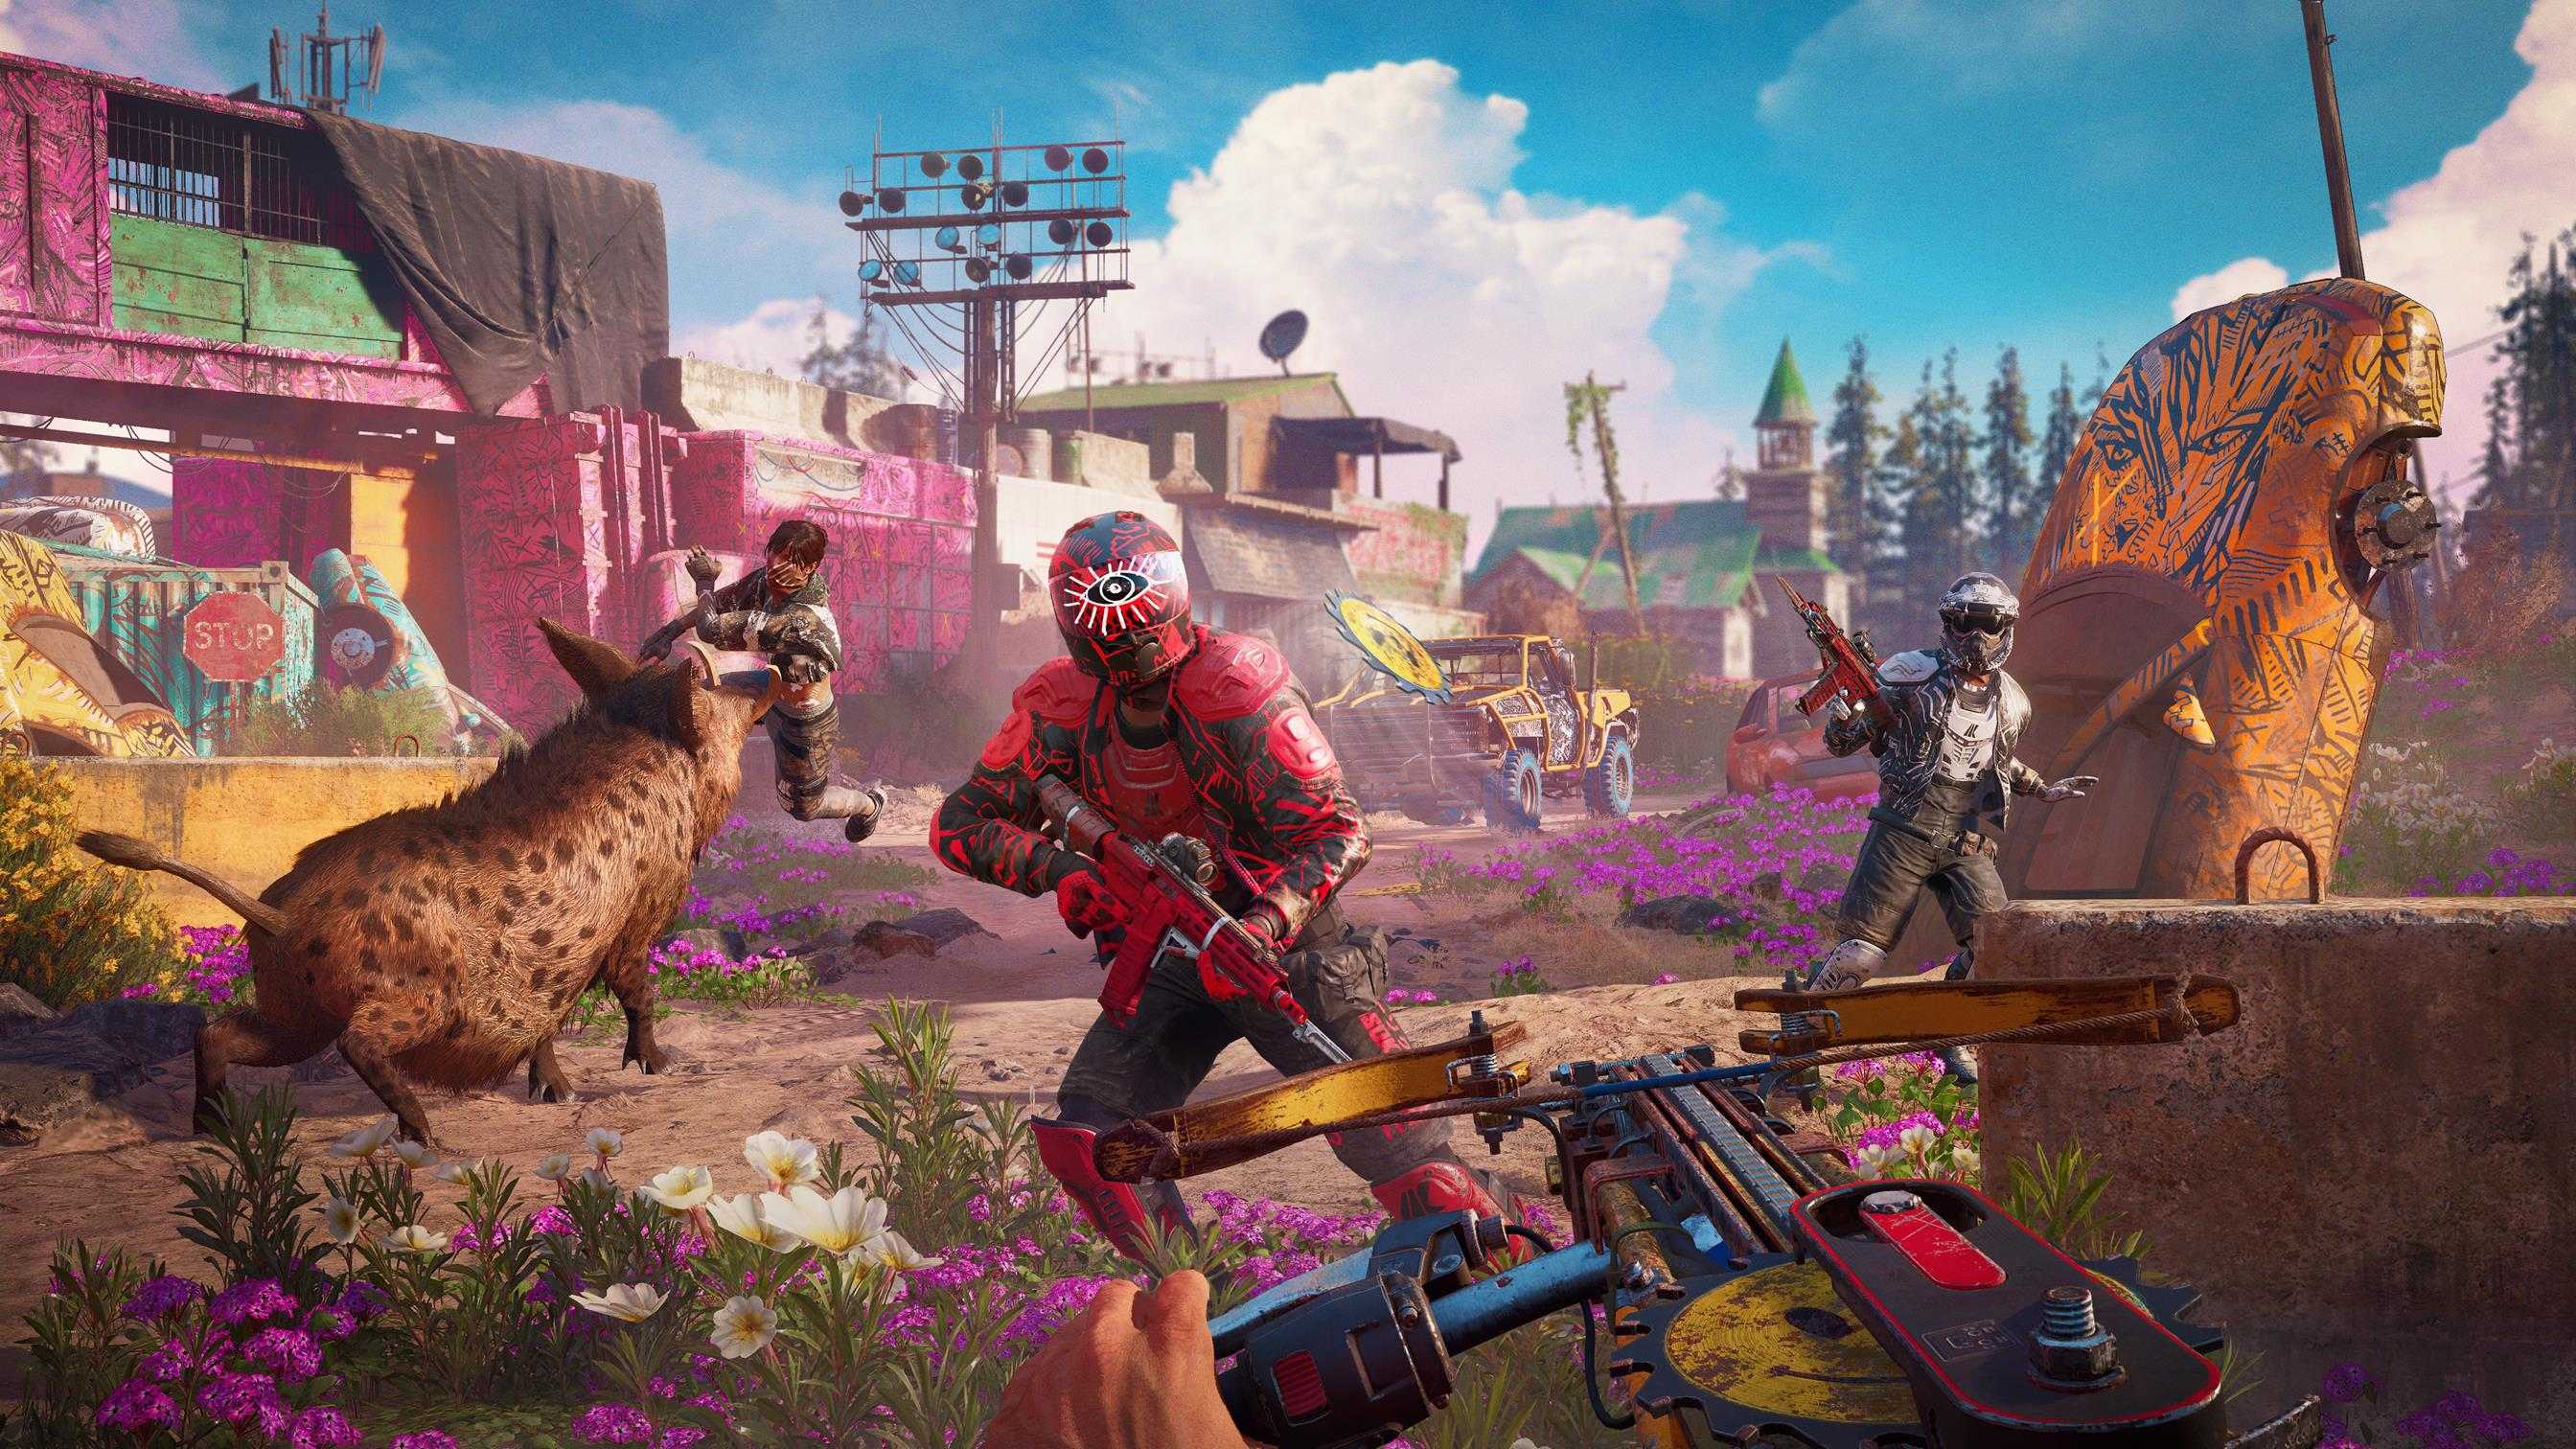 Far Cry New Dawn Pc Specs Revealed For 720p 1080p 4k Vg247